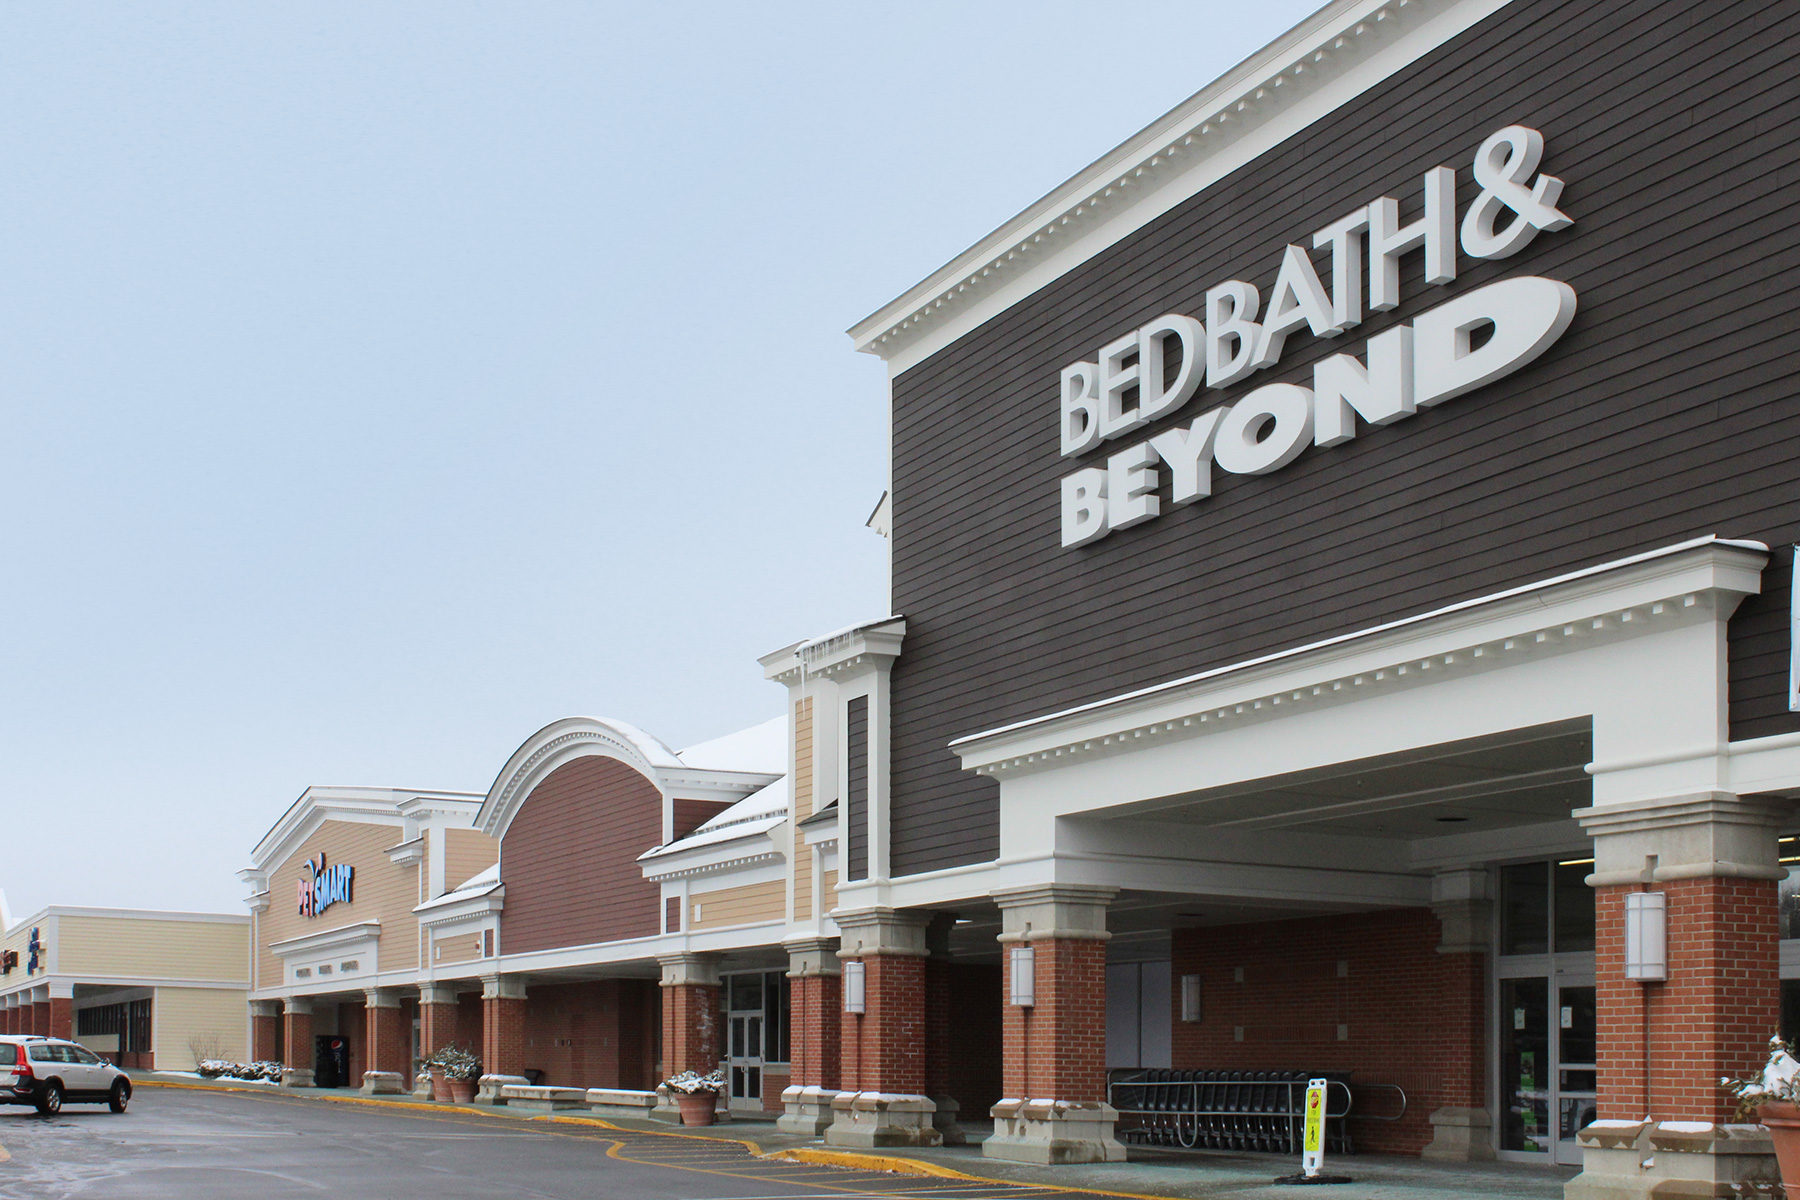 Bed bath and beyond watertown ny - Merrymeeting Plaza